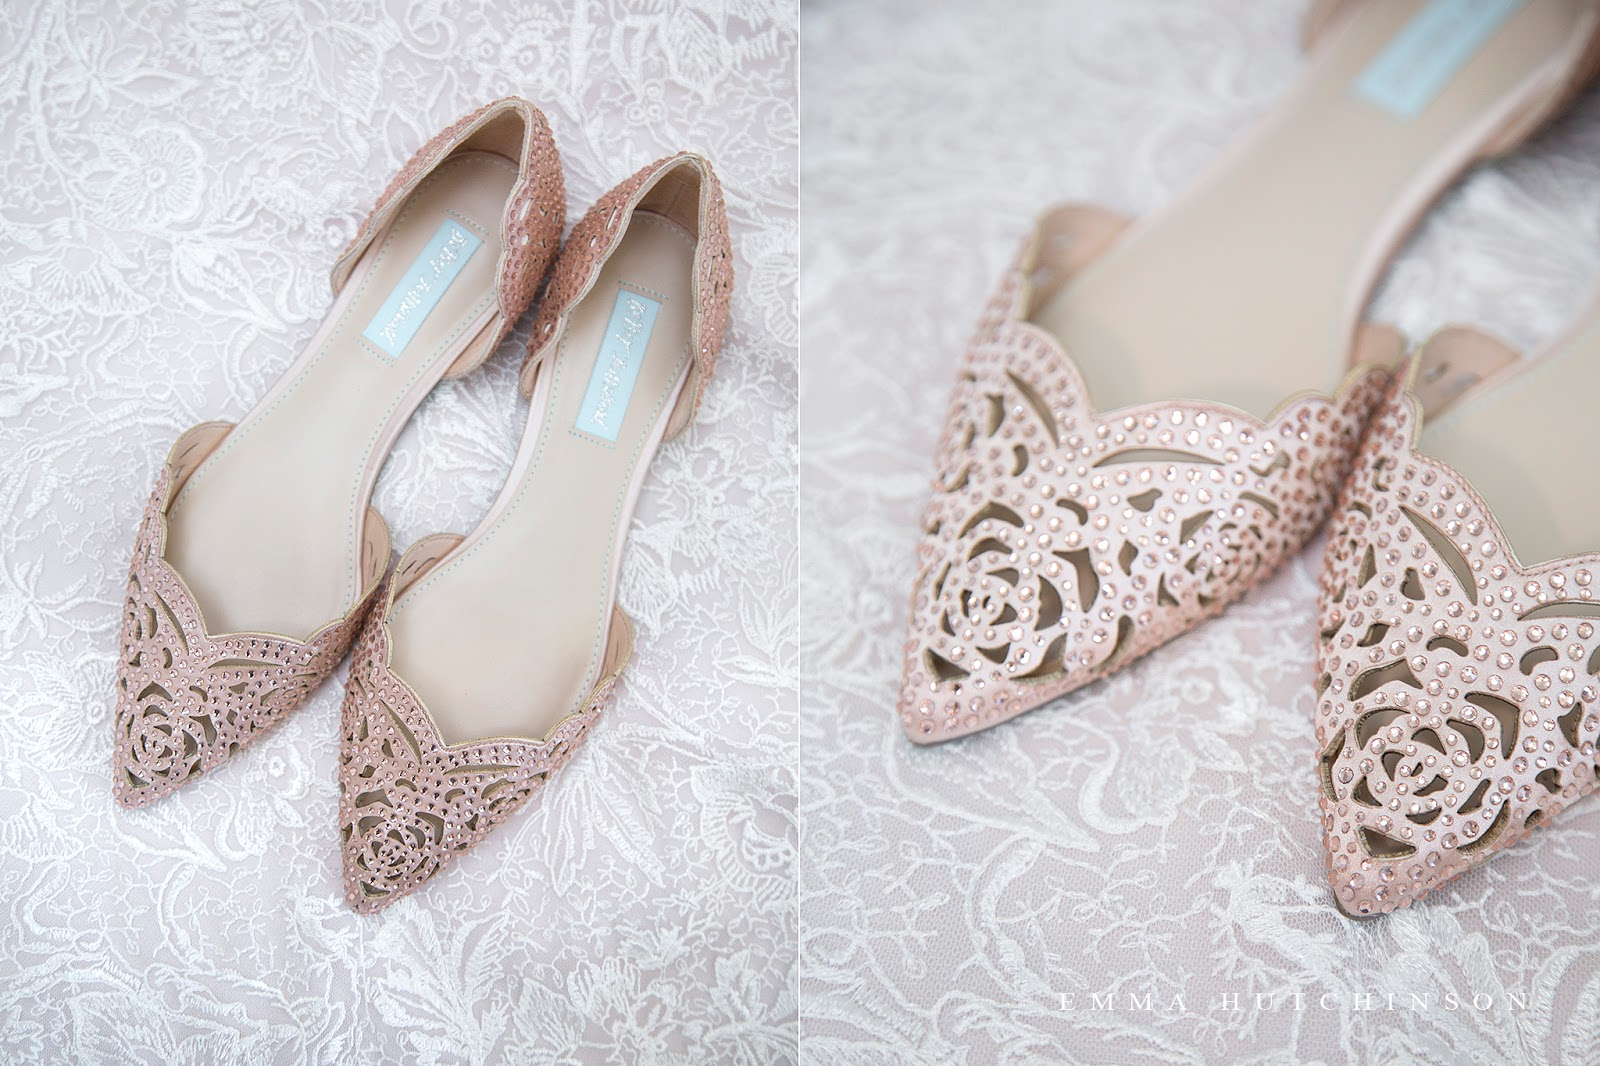 New-Wes-Valley Central Newfoundland Weddings - Gorgeous blush pink wedding shoe